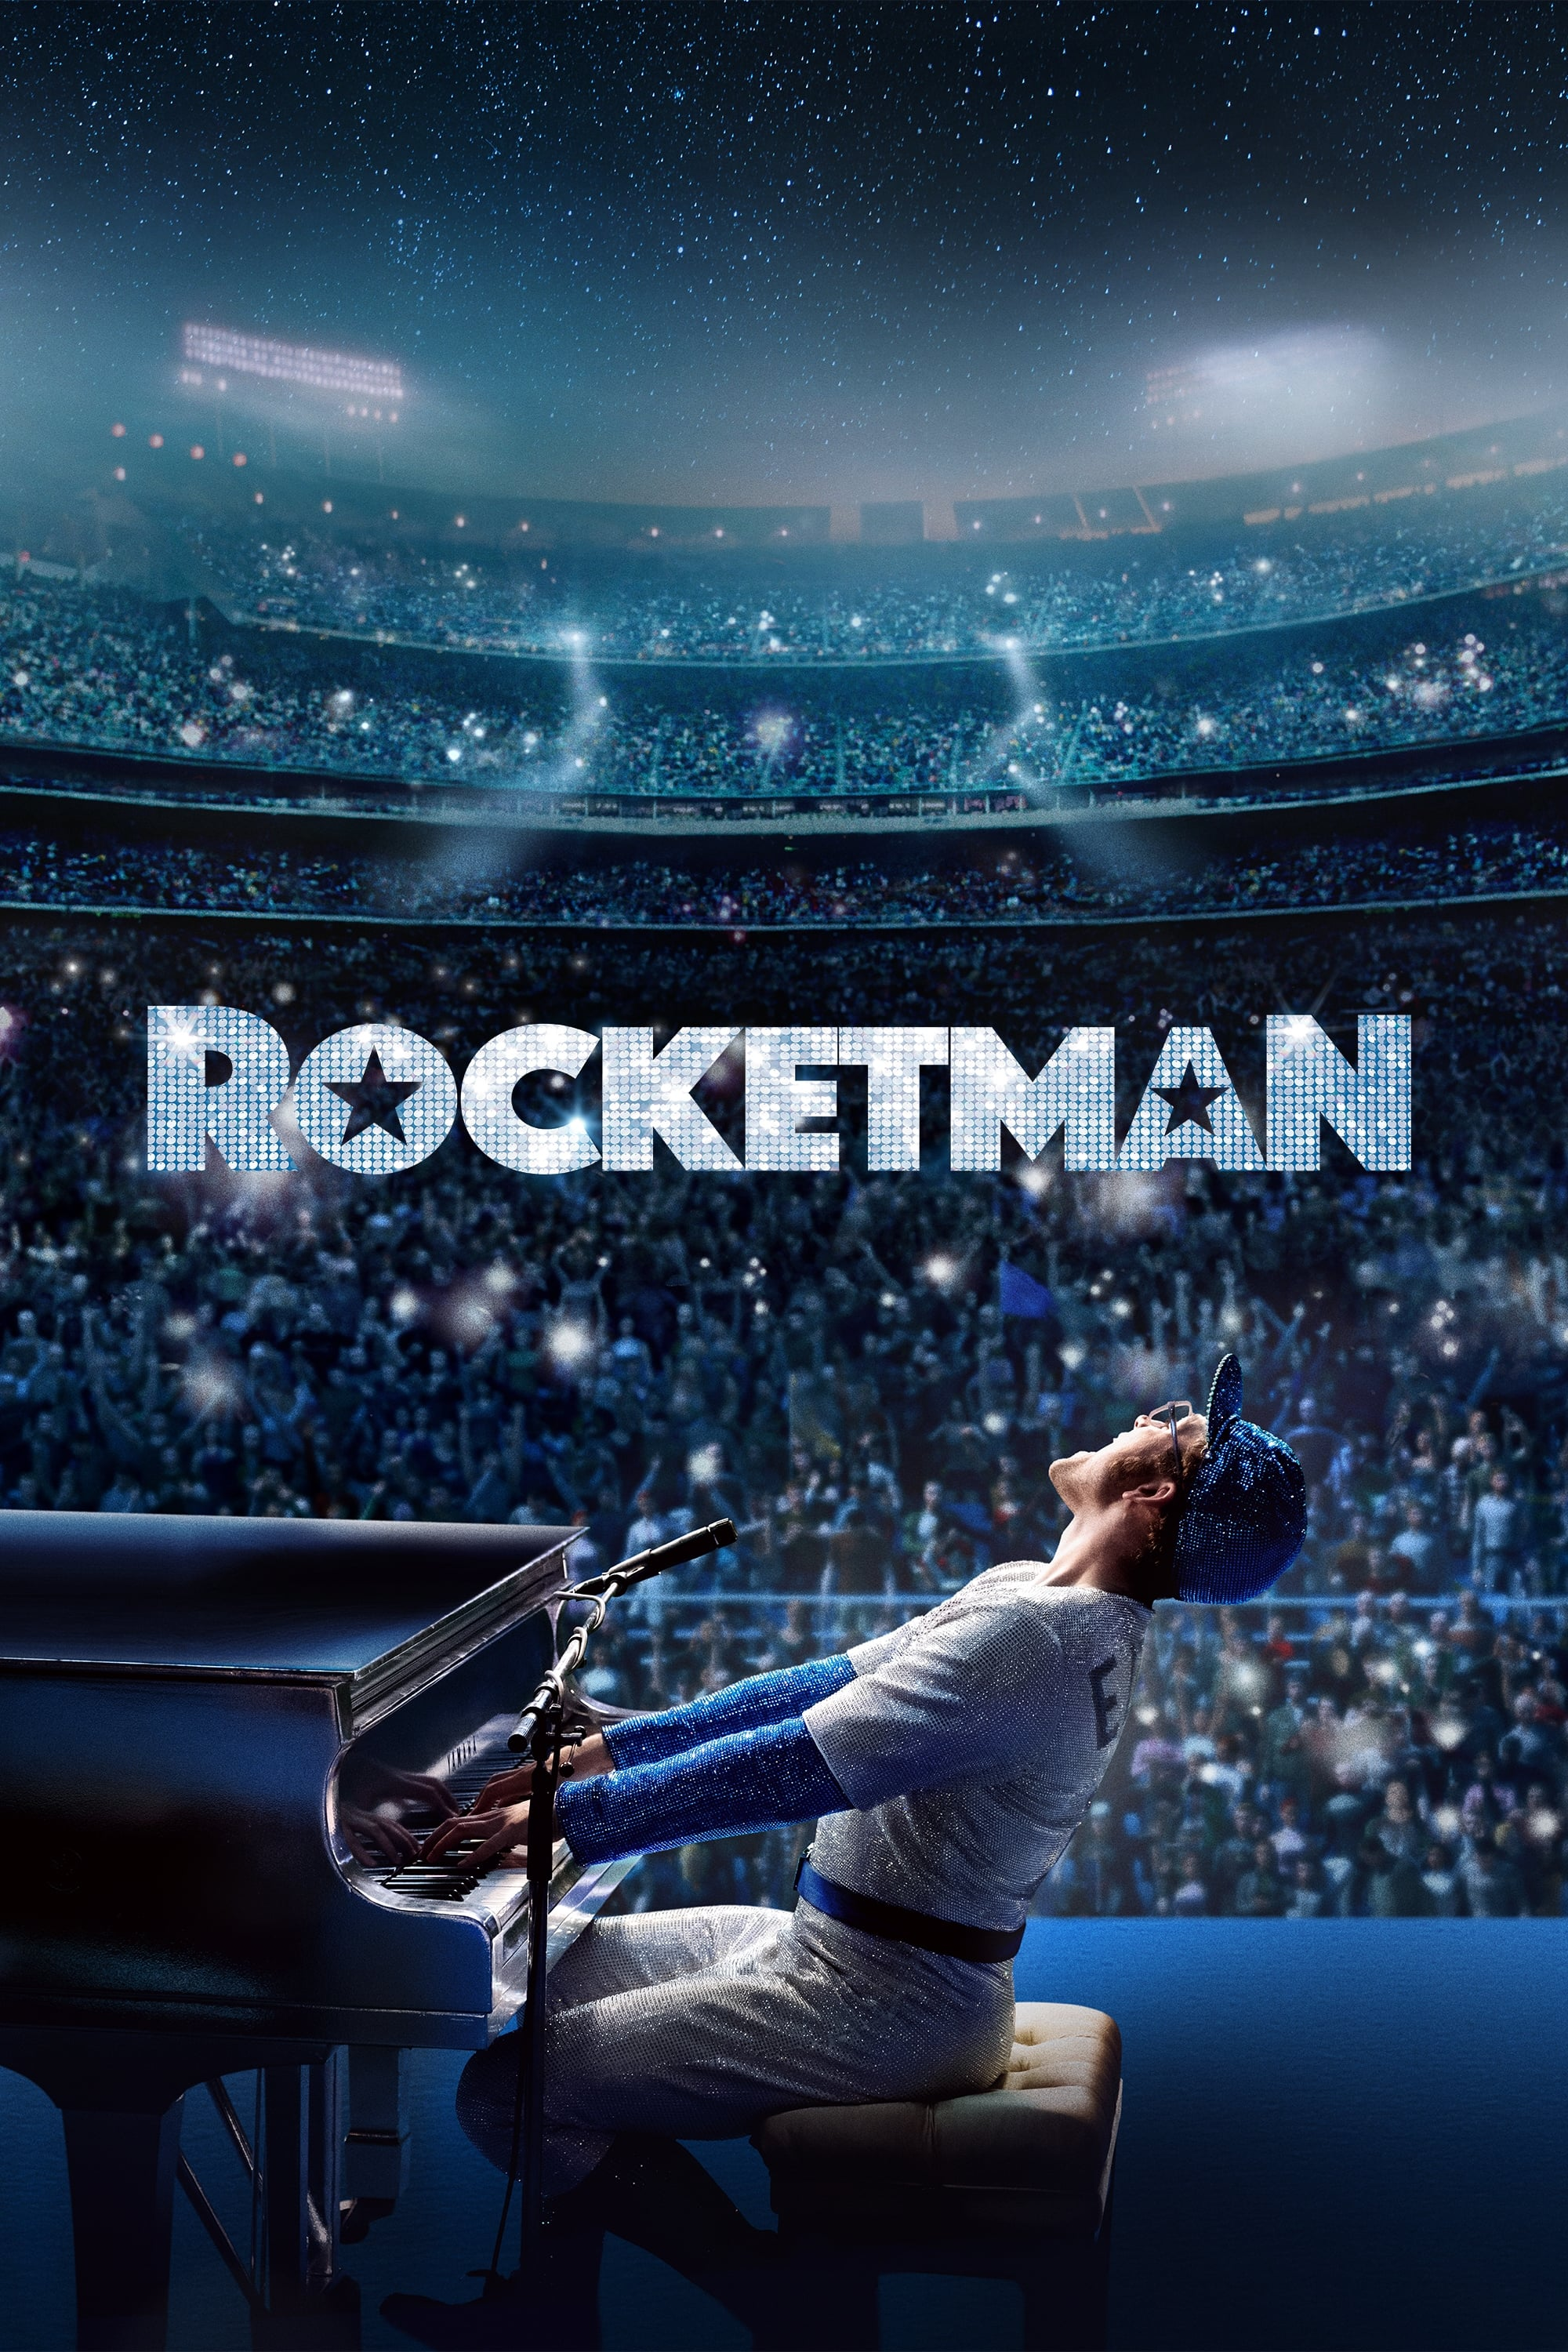 Rocketman poster, capa, cartaz